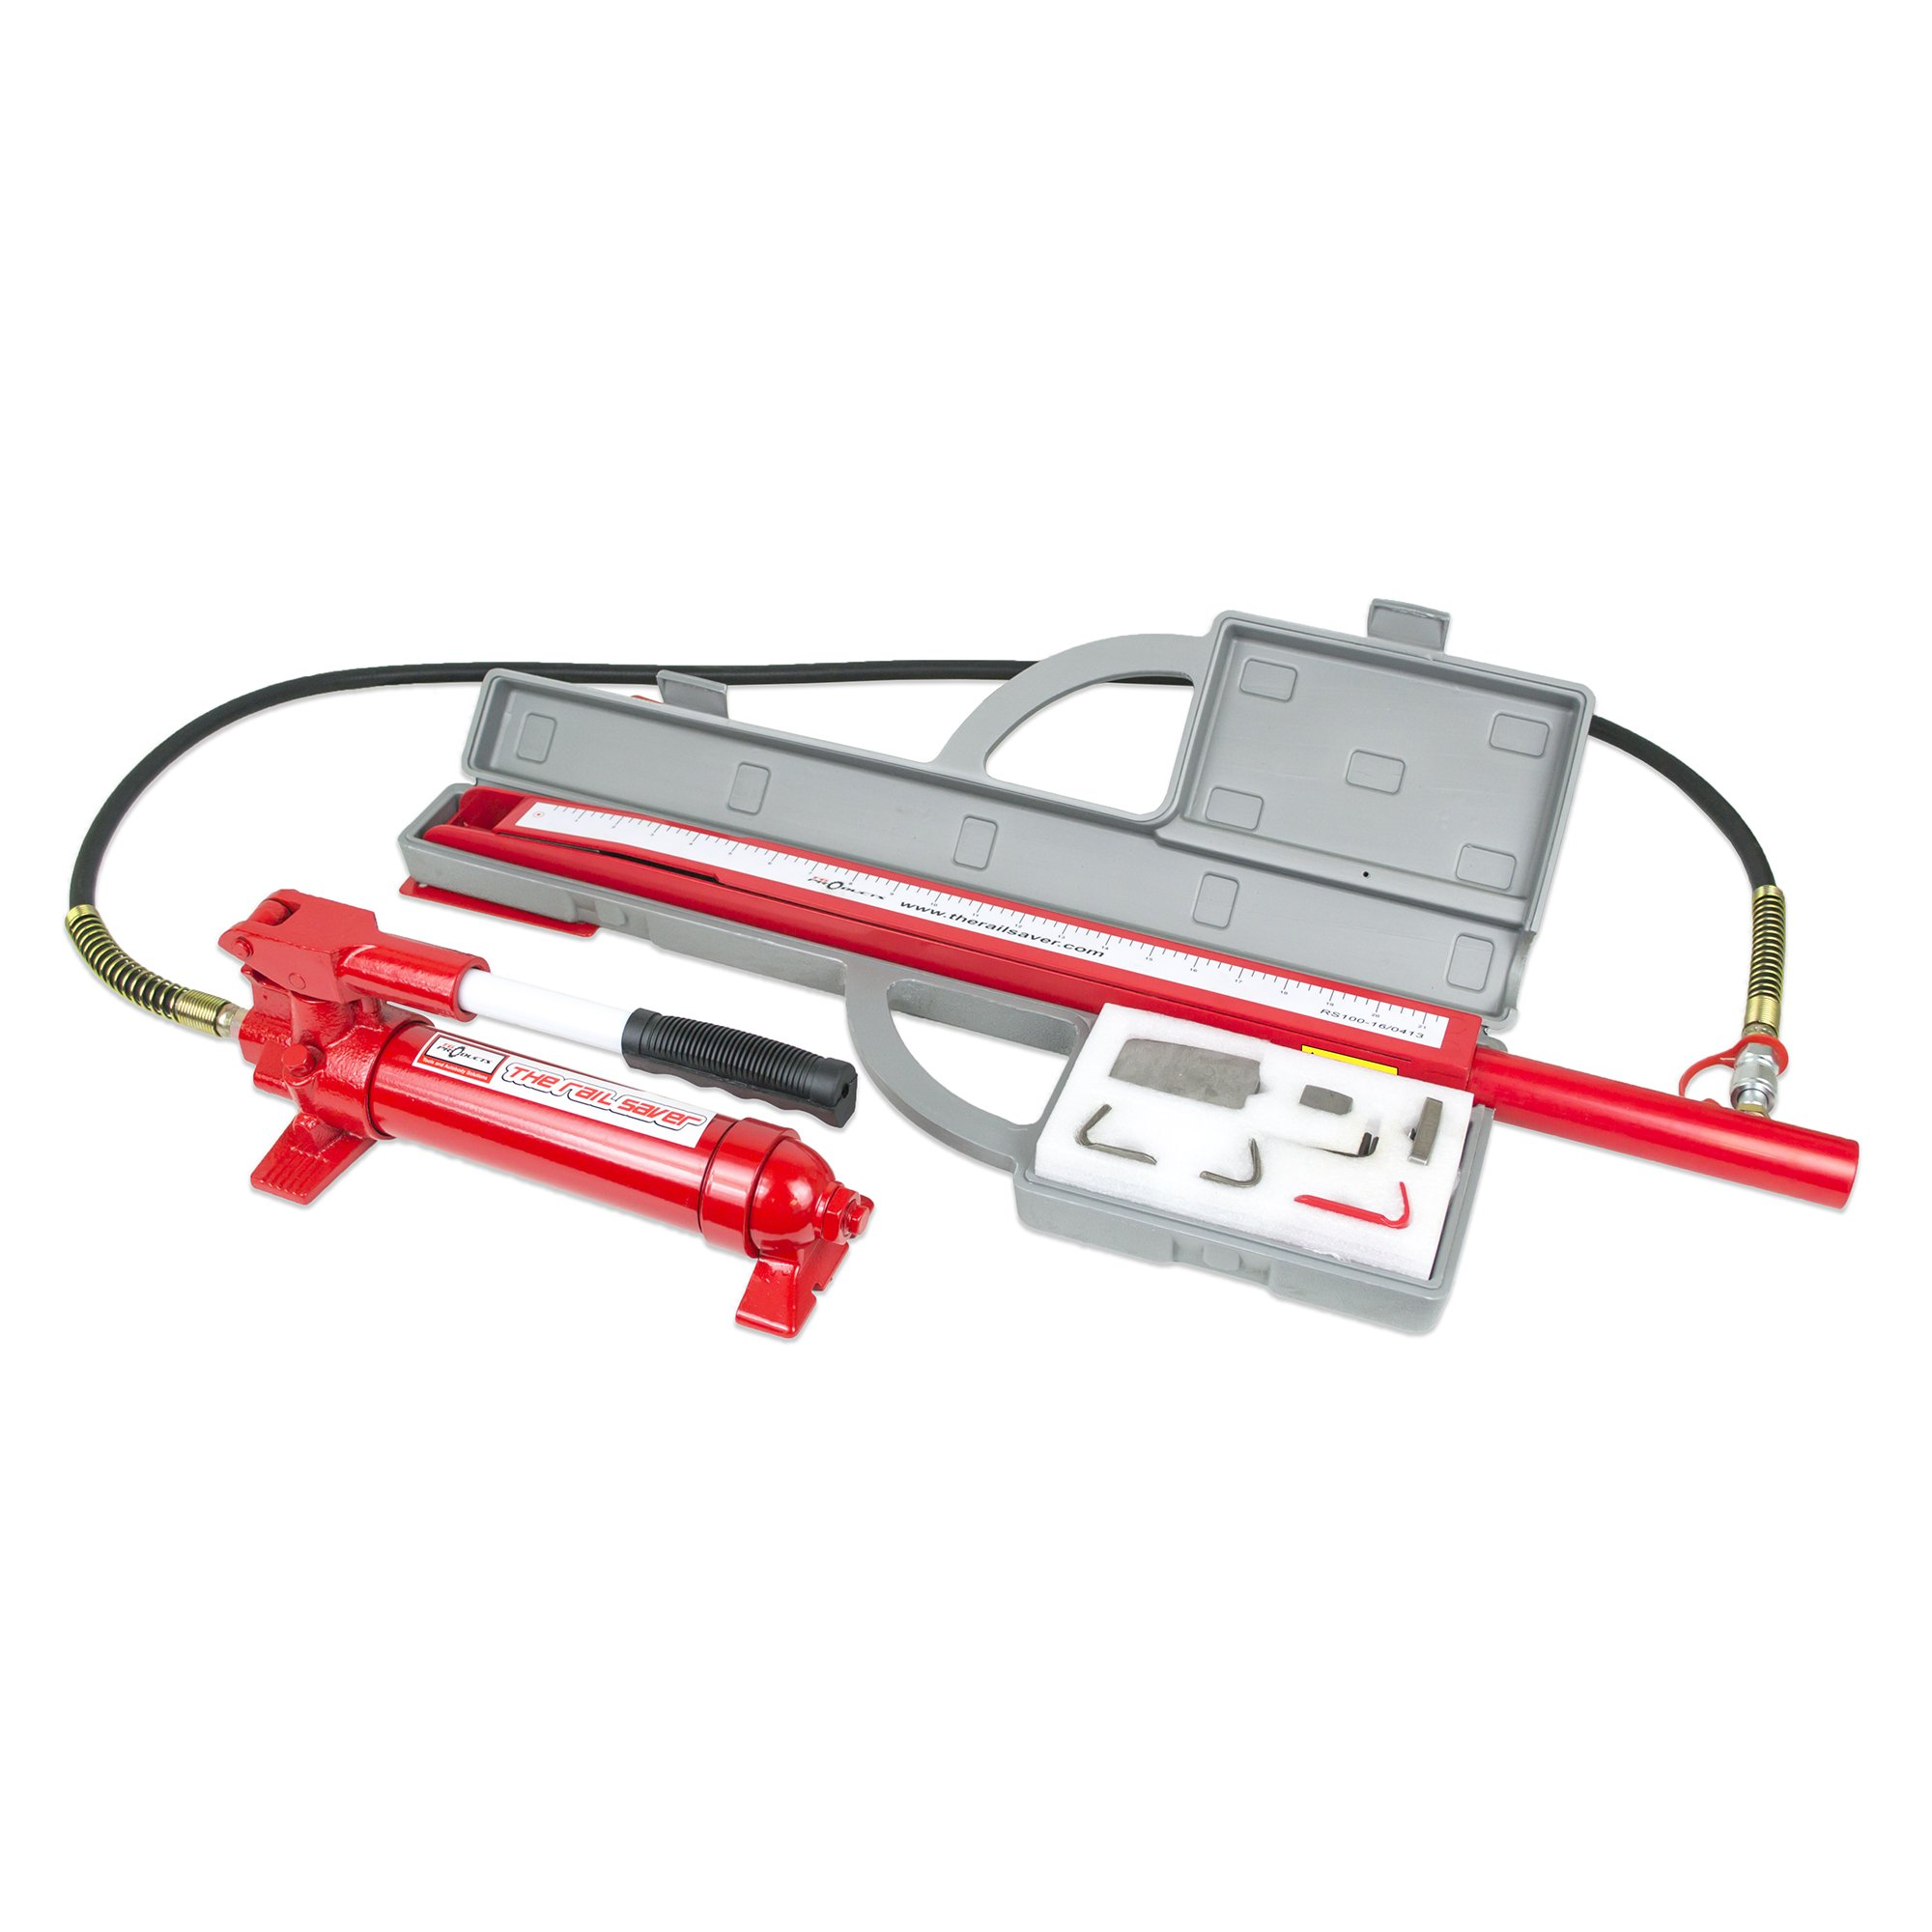 TG Products The Rail Saver Repair System, Accessory Kit, Ram, Case and Wall Bracket (with Pump) by TG Products (Image #3)